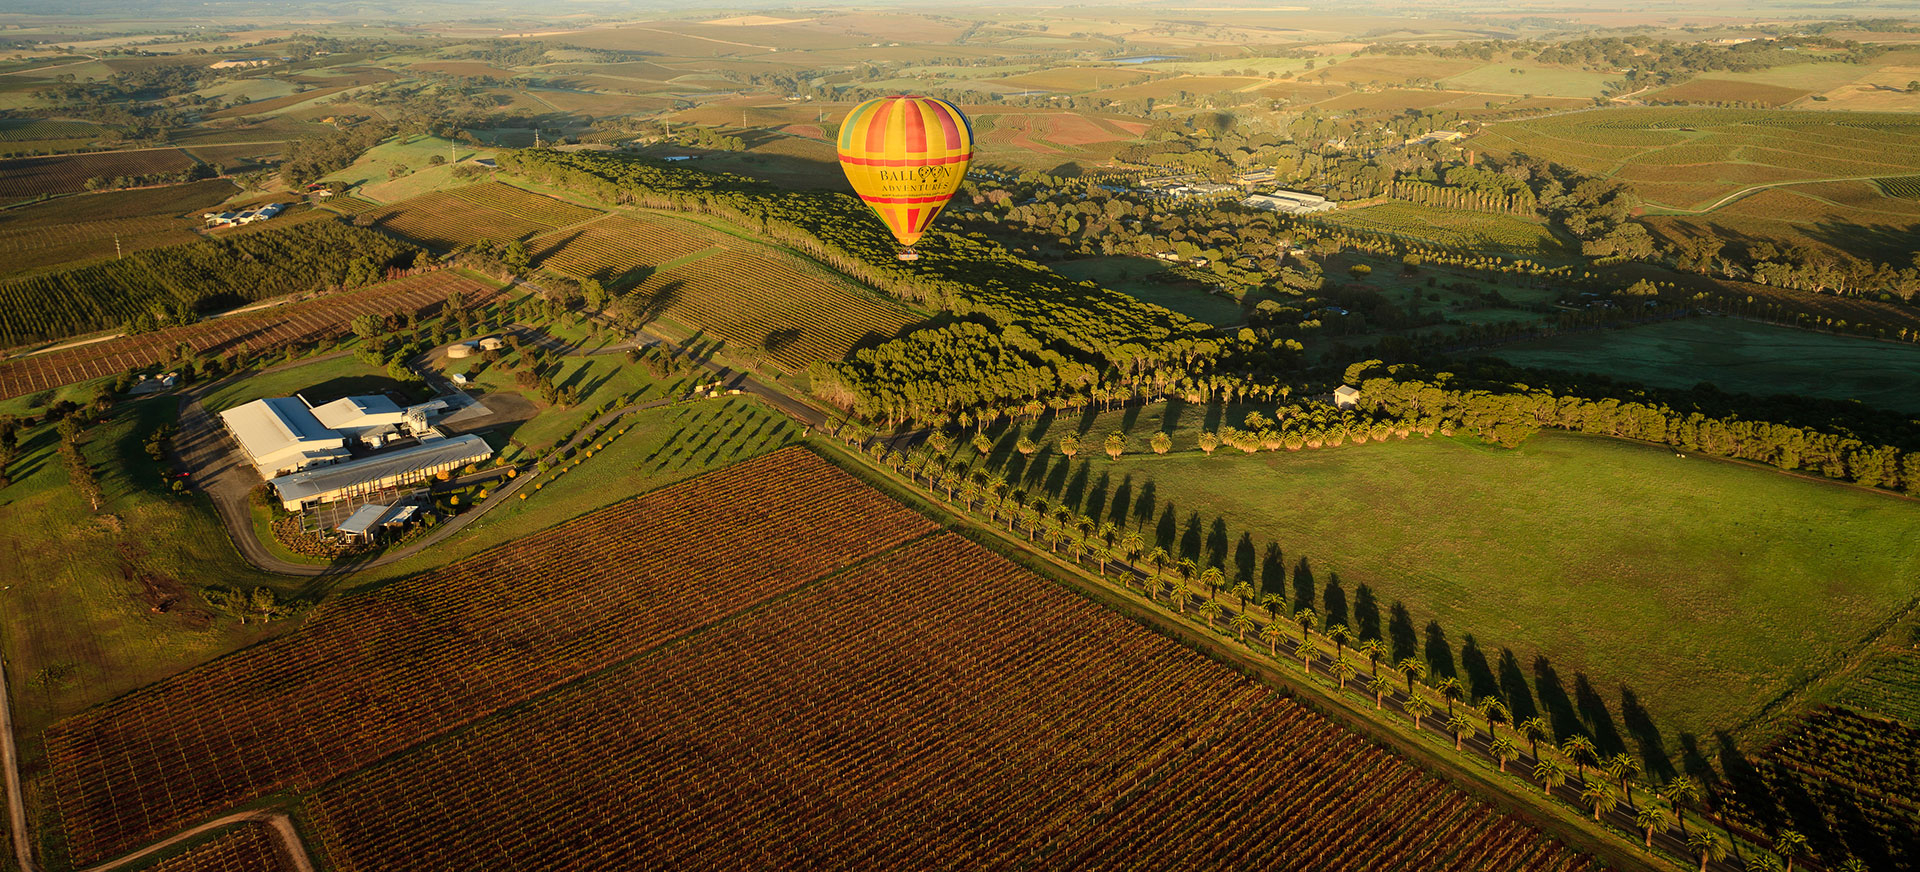 South Australia | Barossa Valley, South Australia